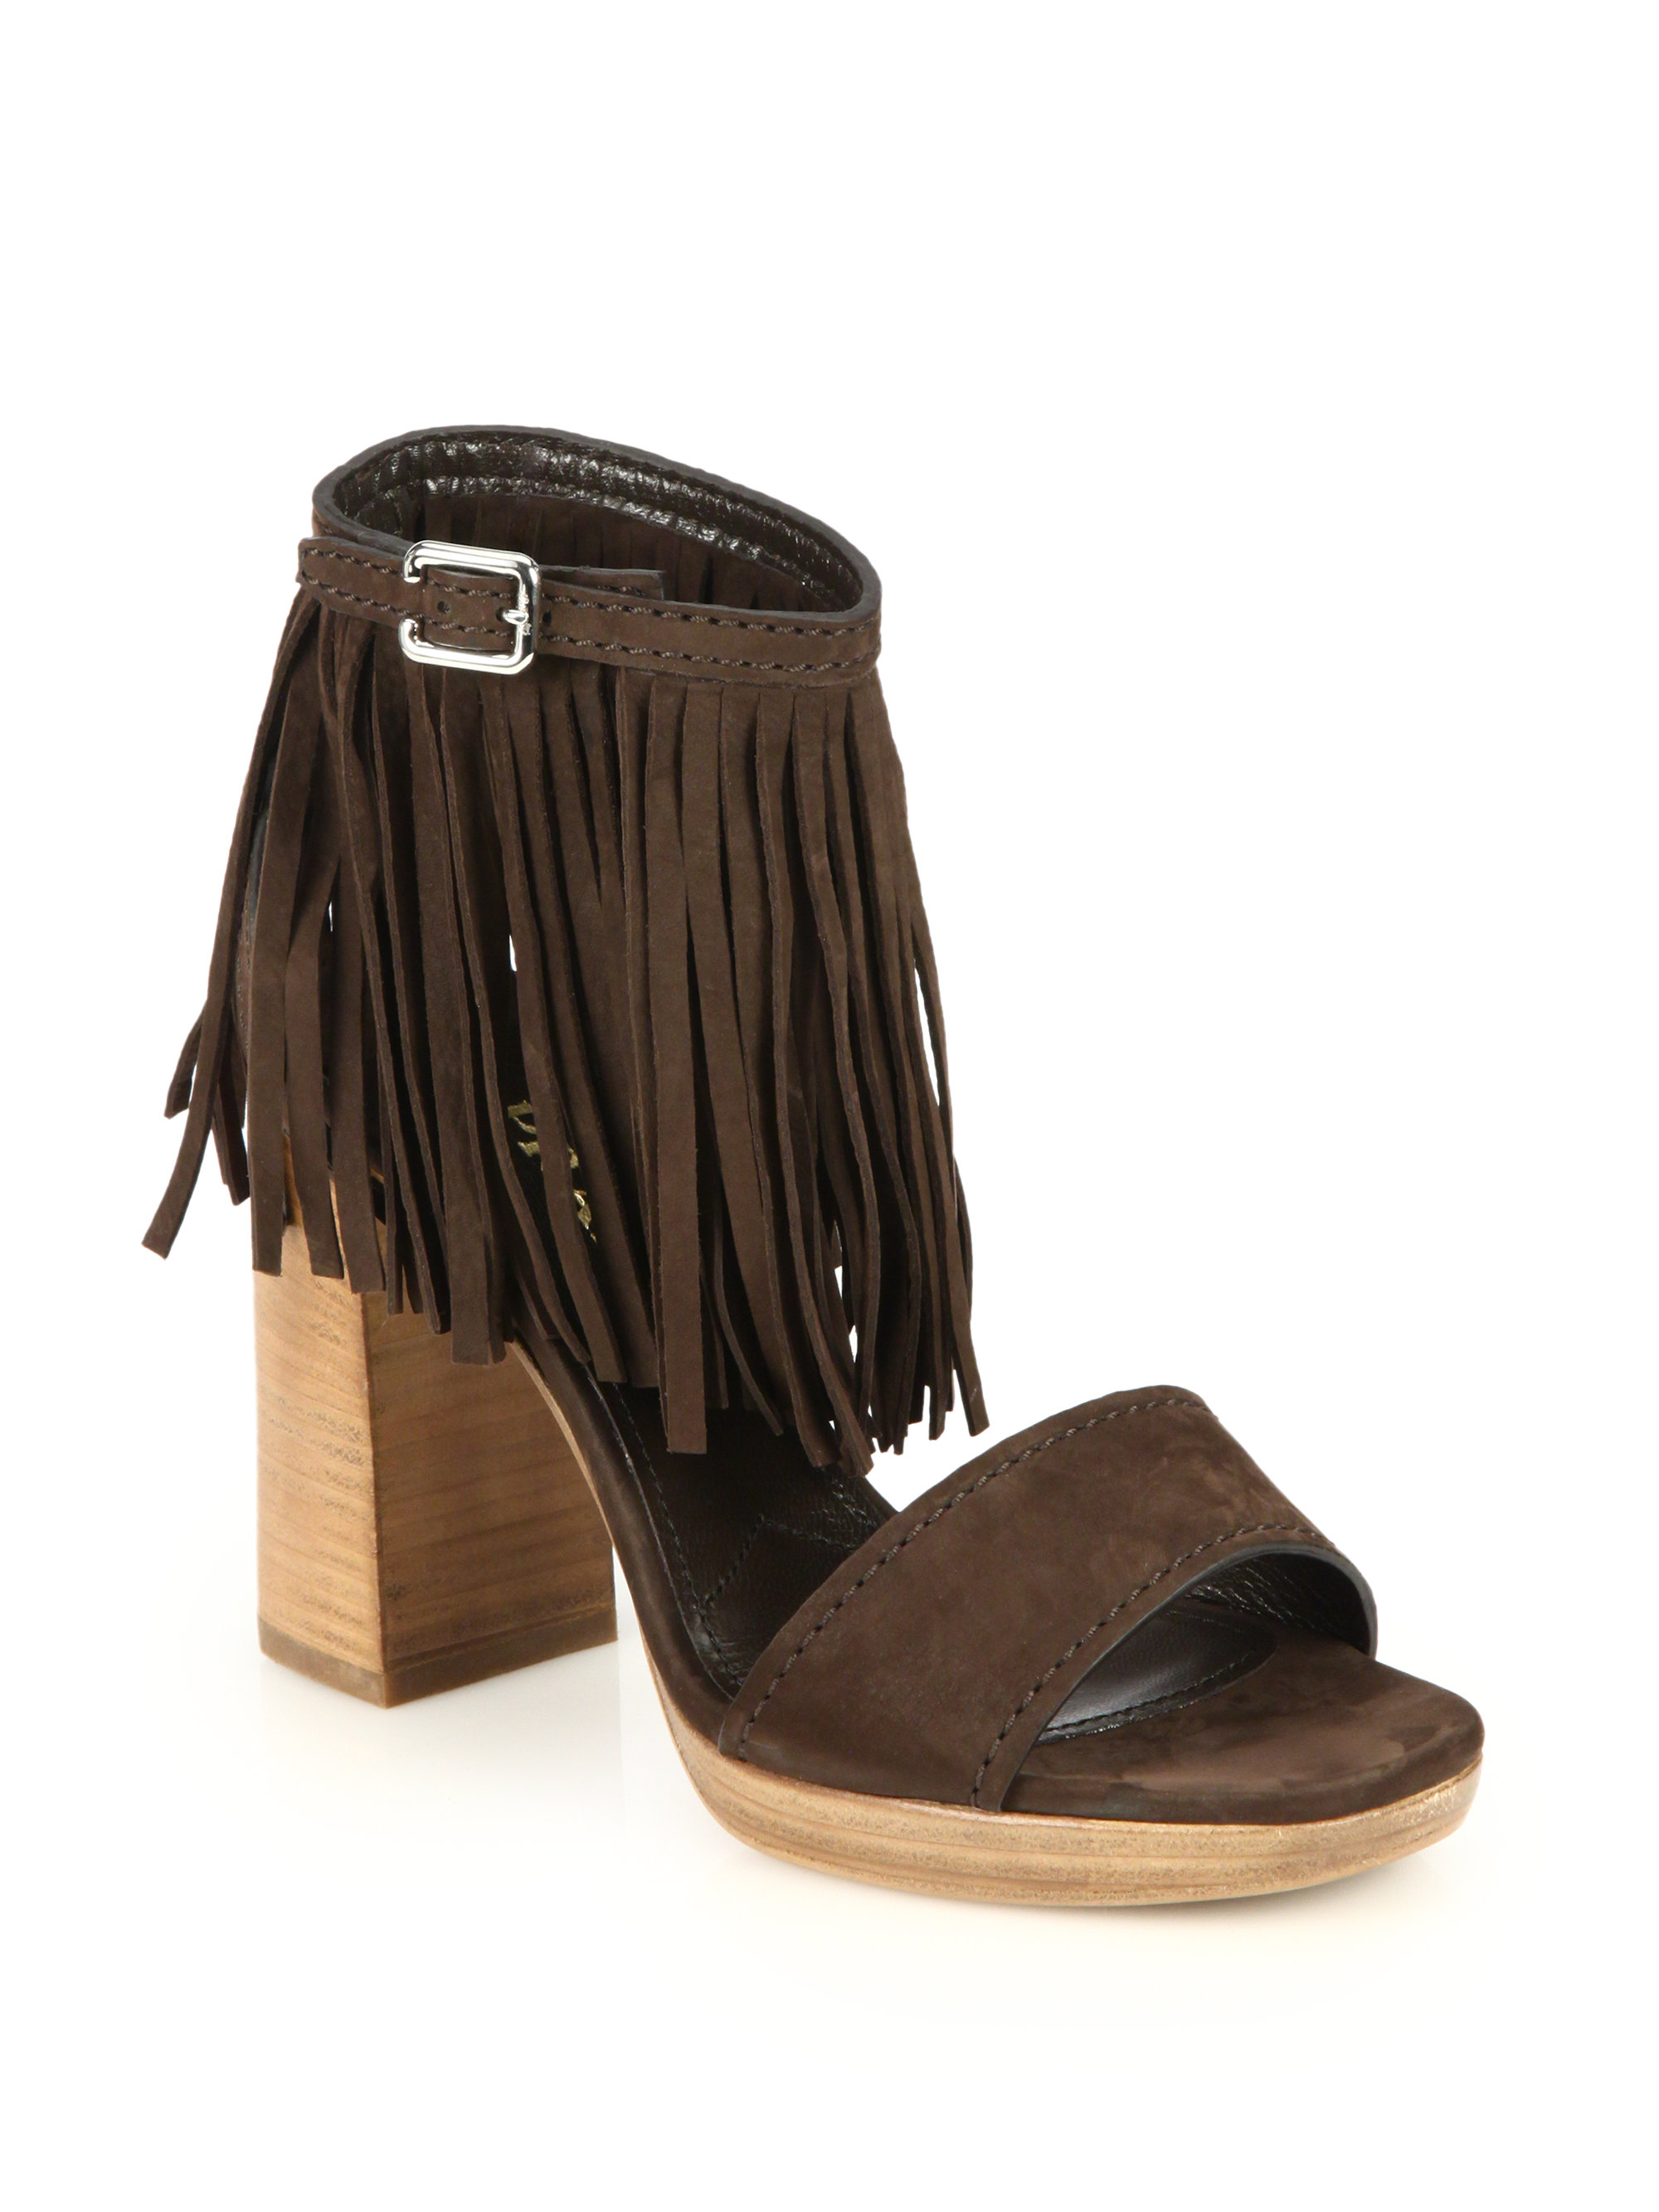 cheap sale low price fee shipping outlet collections Prada Suede Fringe Sandals Grey outlet store online Grn5uYC